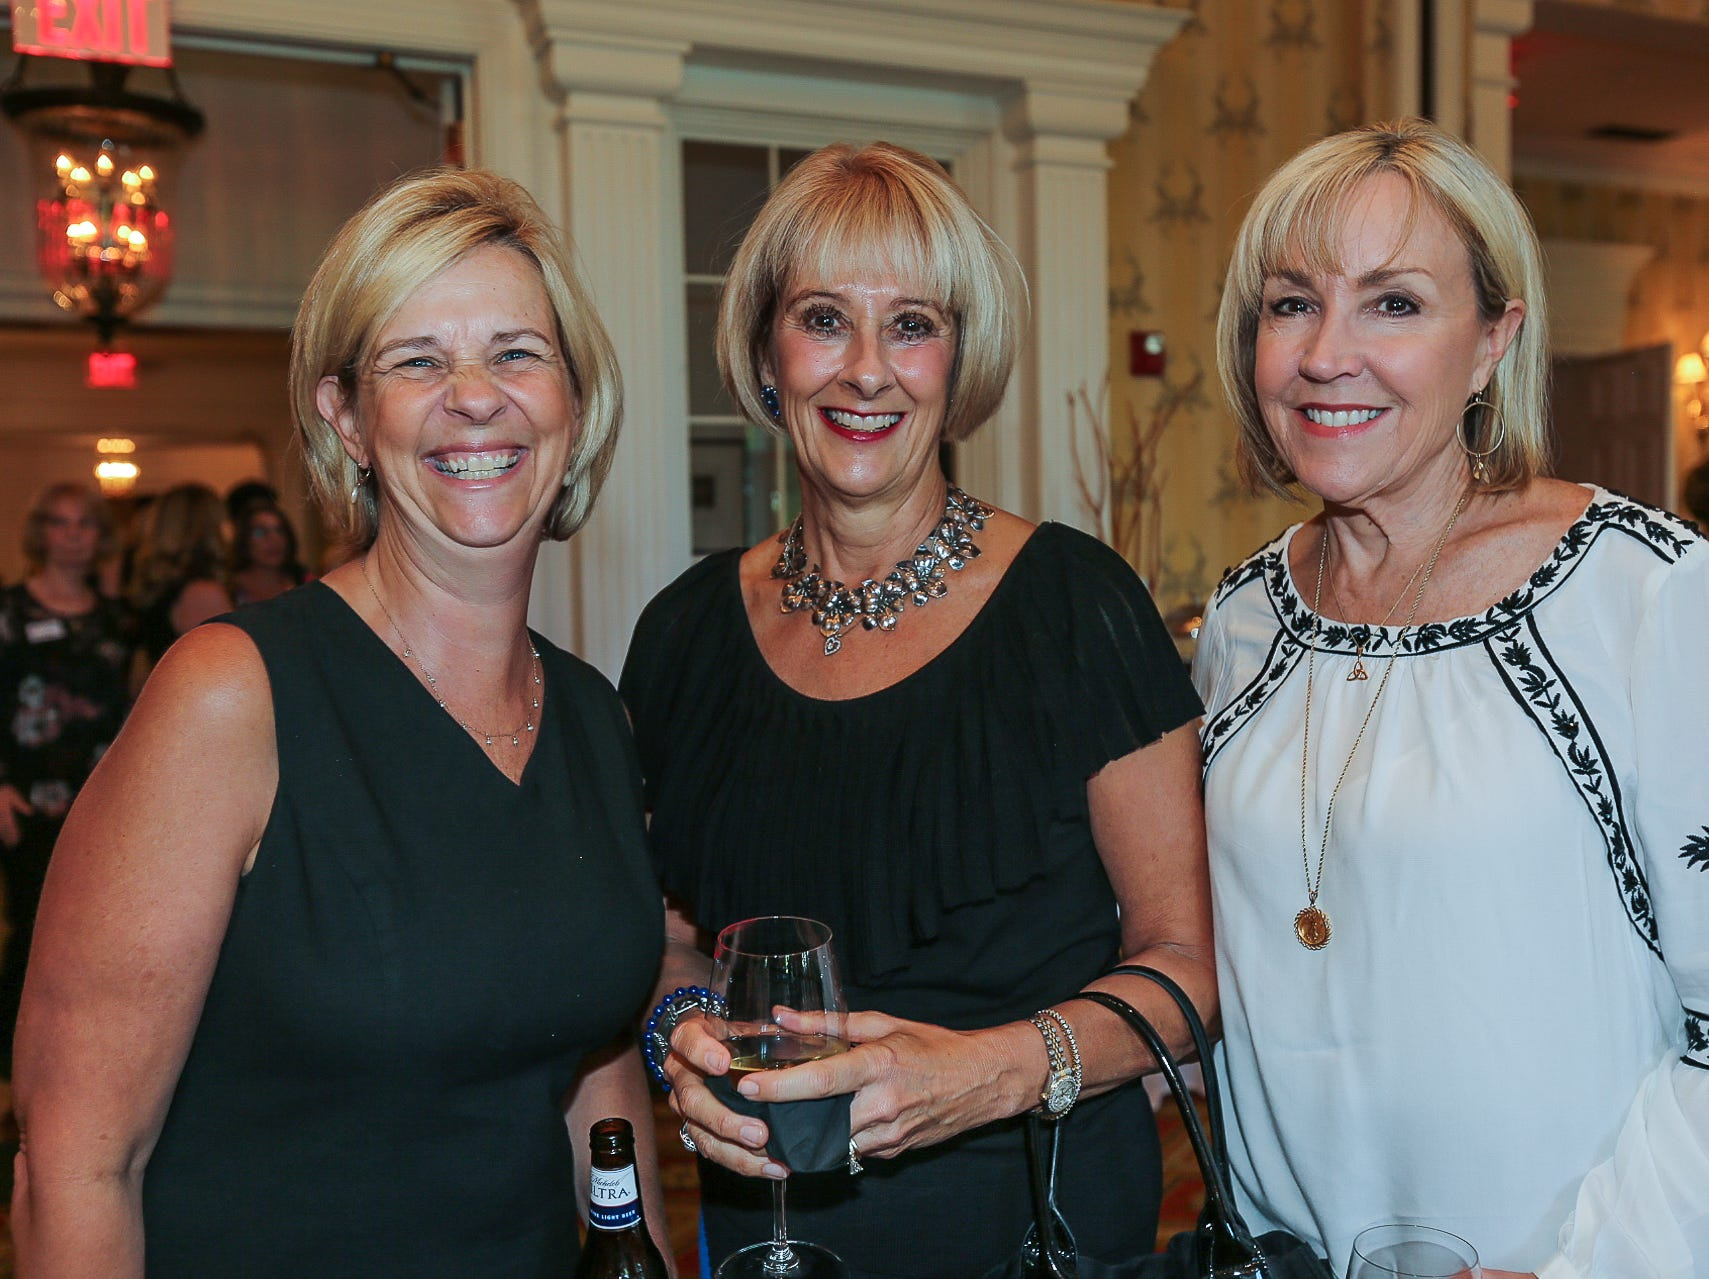 Amy Squires, Lynn Burk, and Cindy Hogan